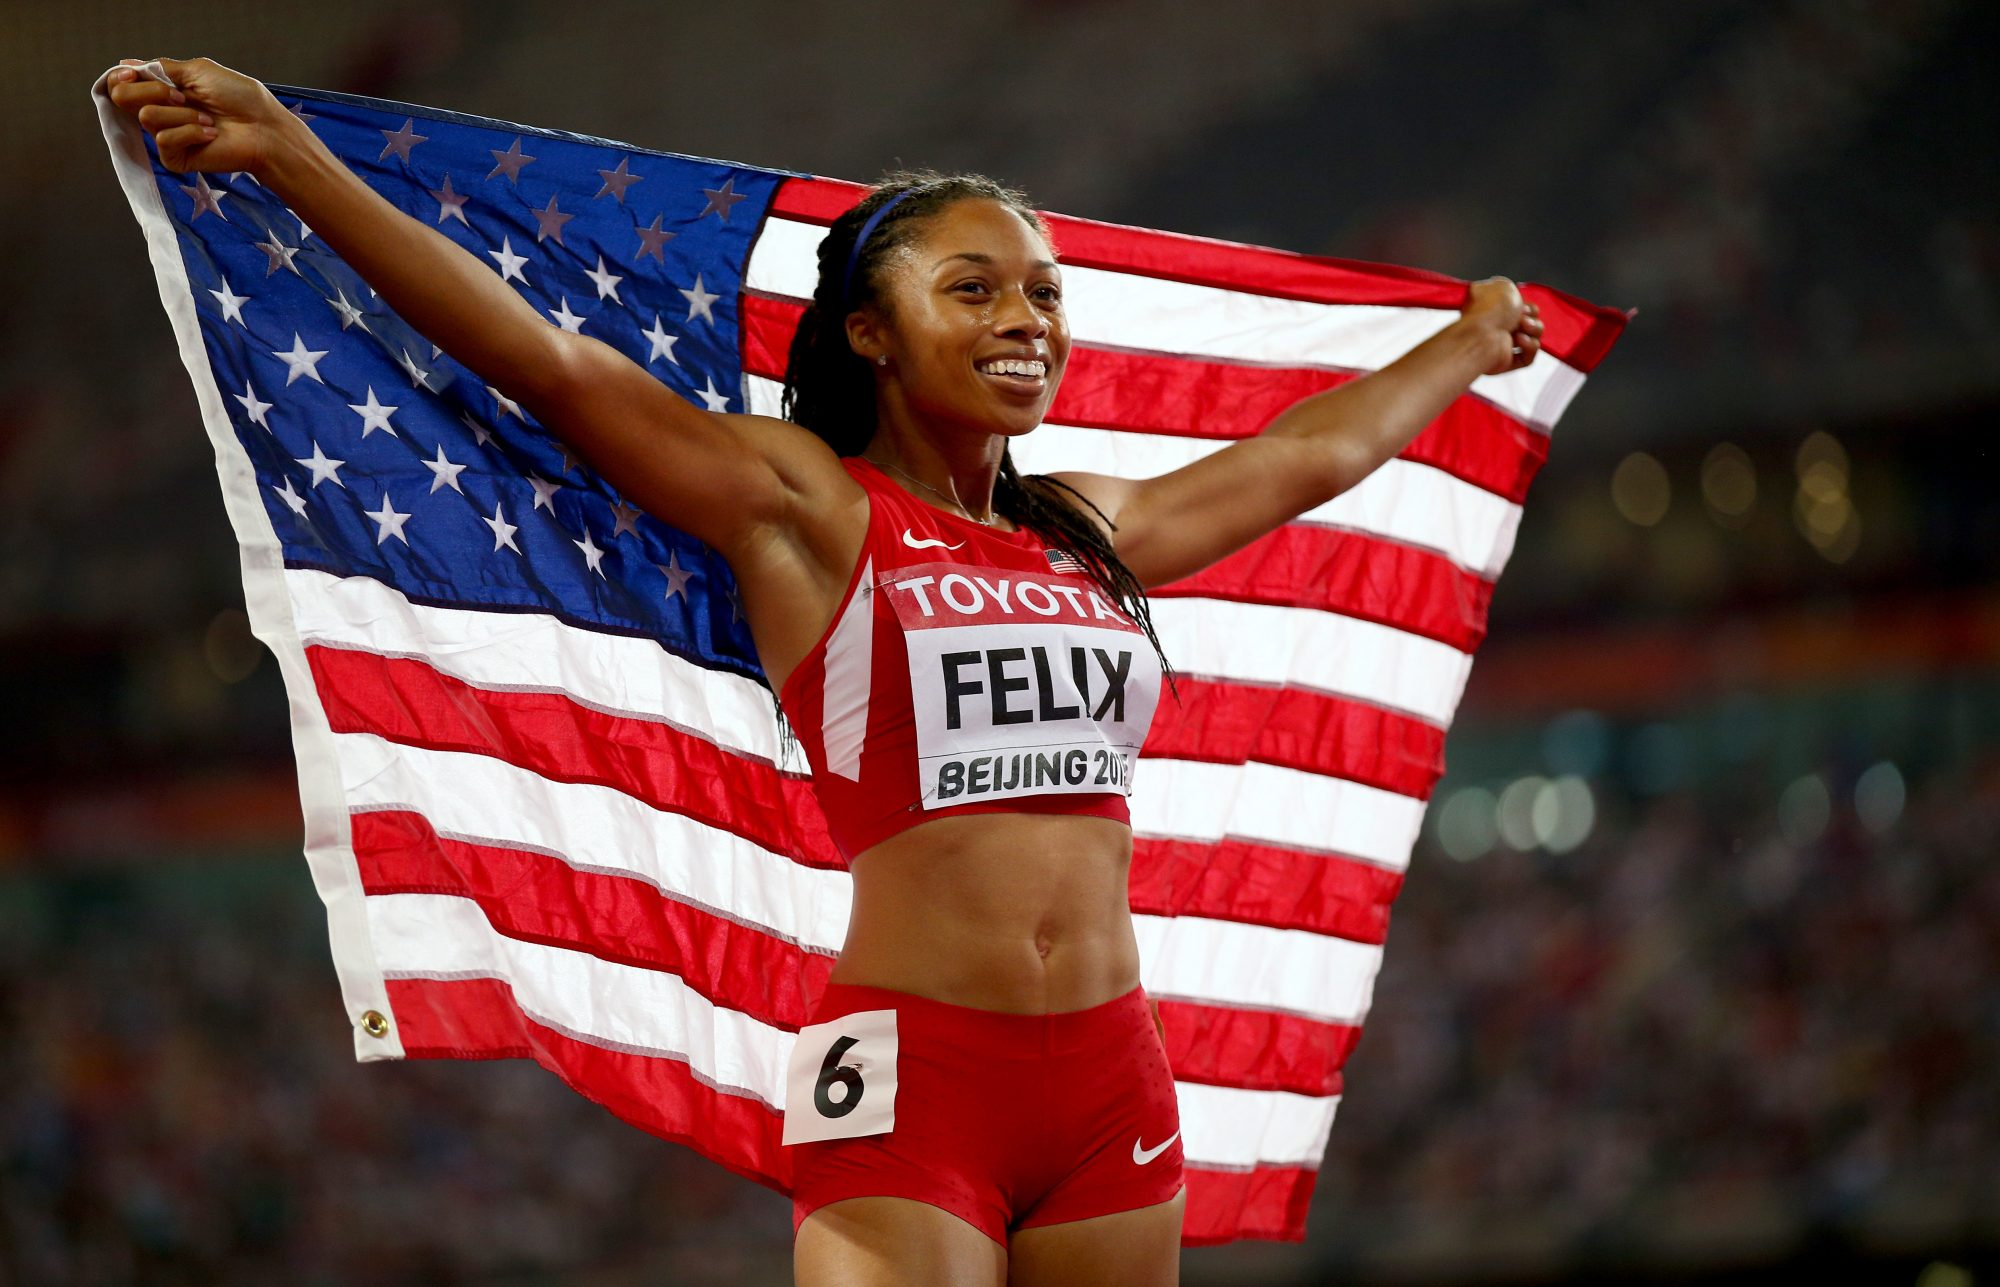 Allyson Felix on Her Olympic Medals, Listening to Her Body, and The Best Advice She's Been Given